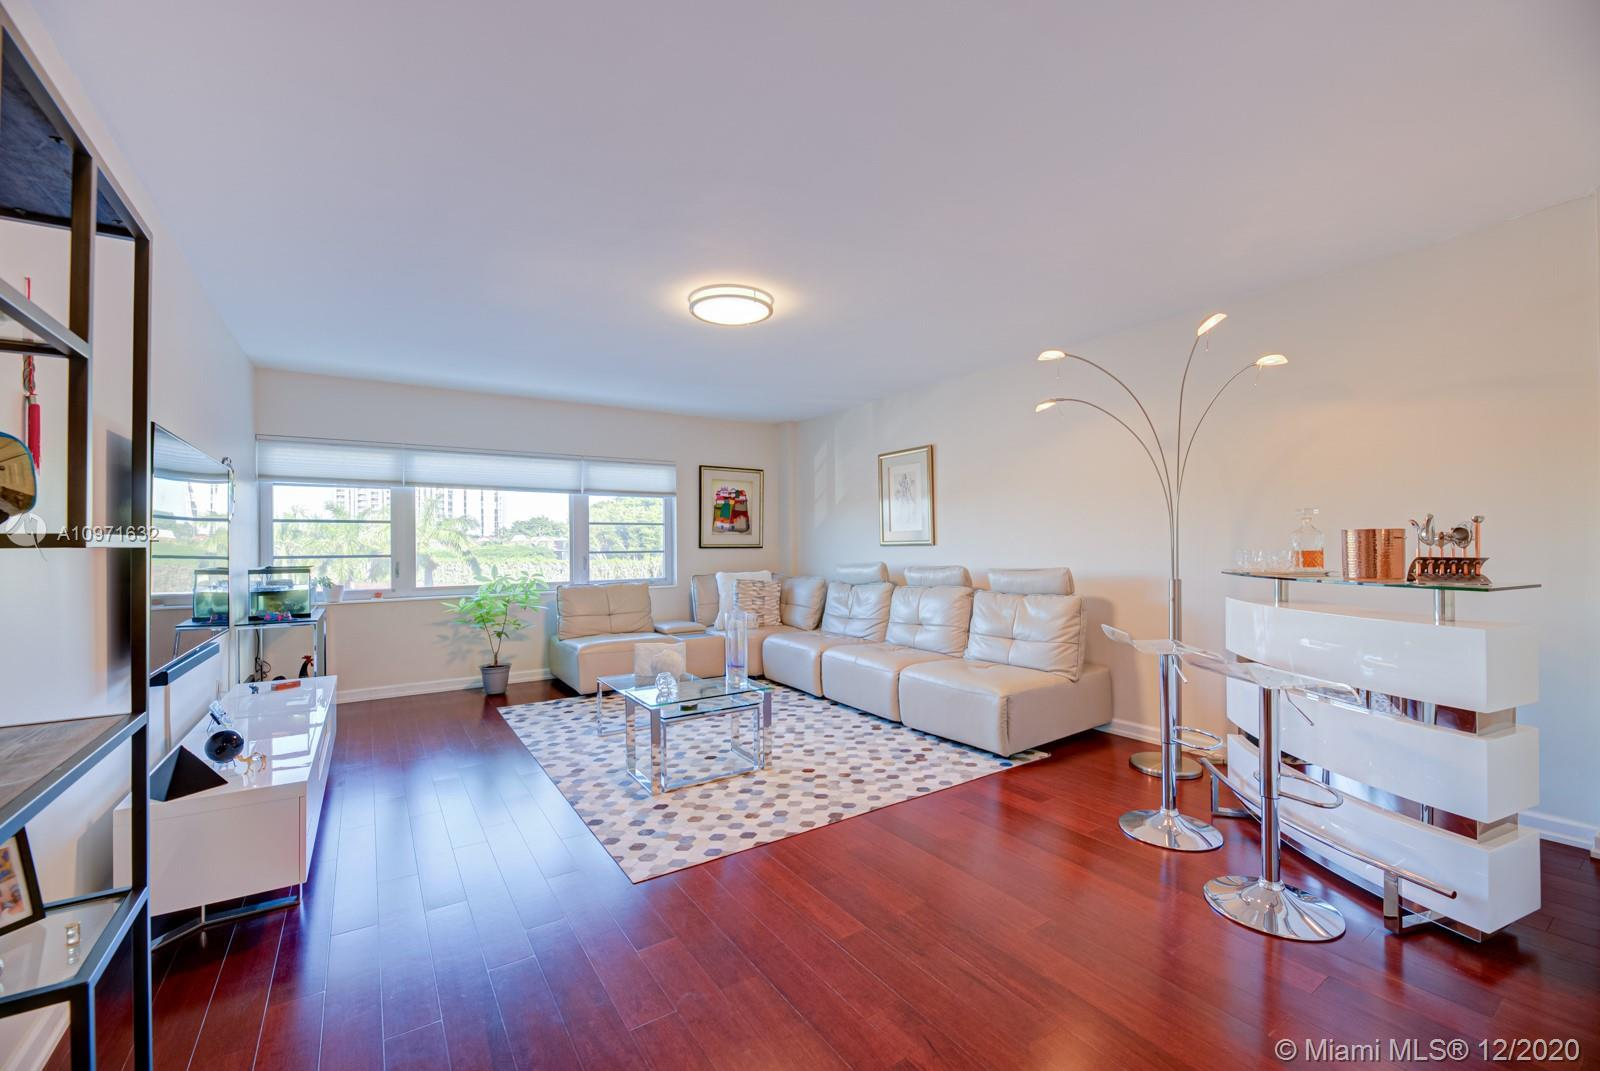 Spectacular 2 bed / 2 bath corner unit located in a boutique bay front building in peaceful and very